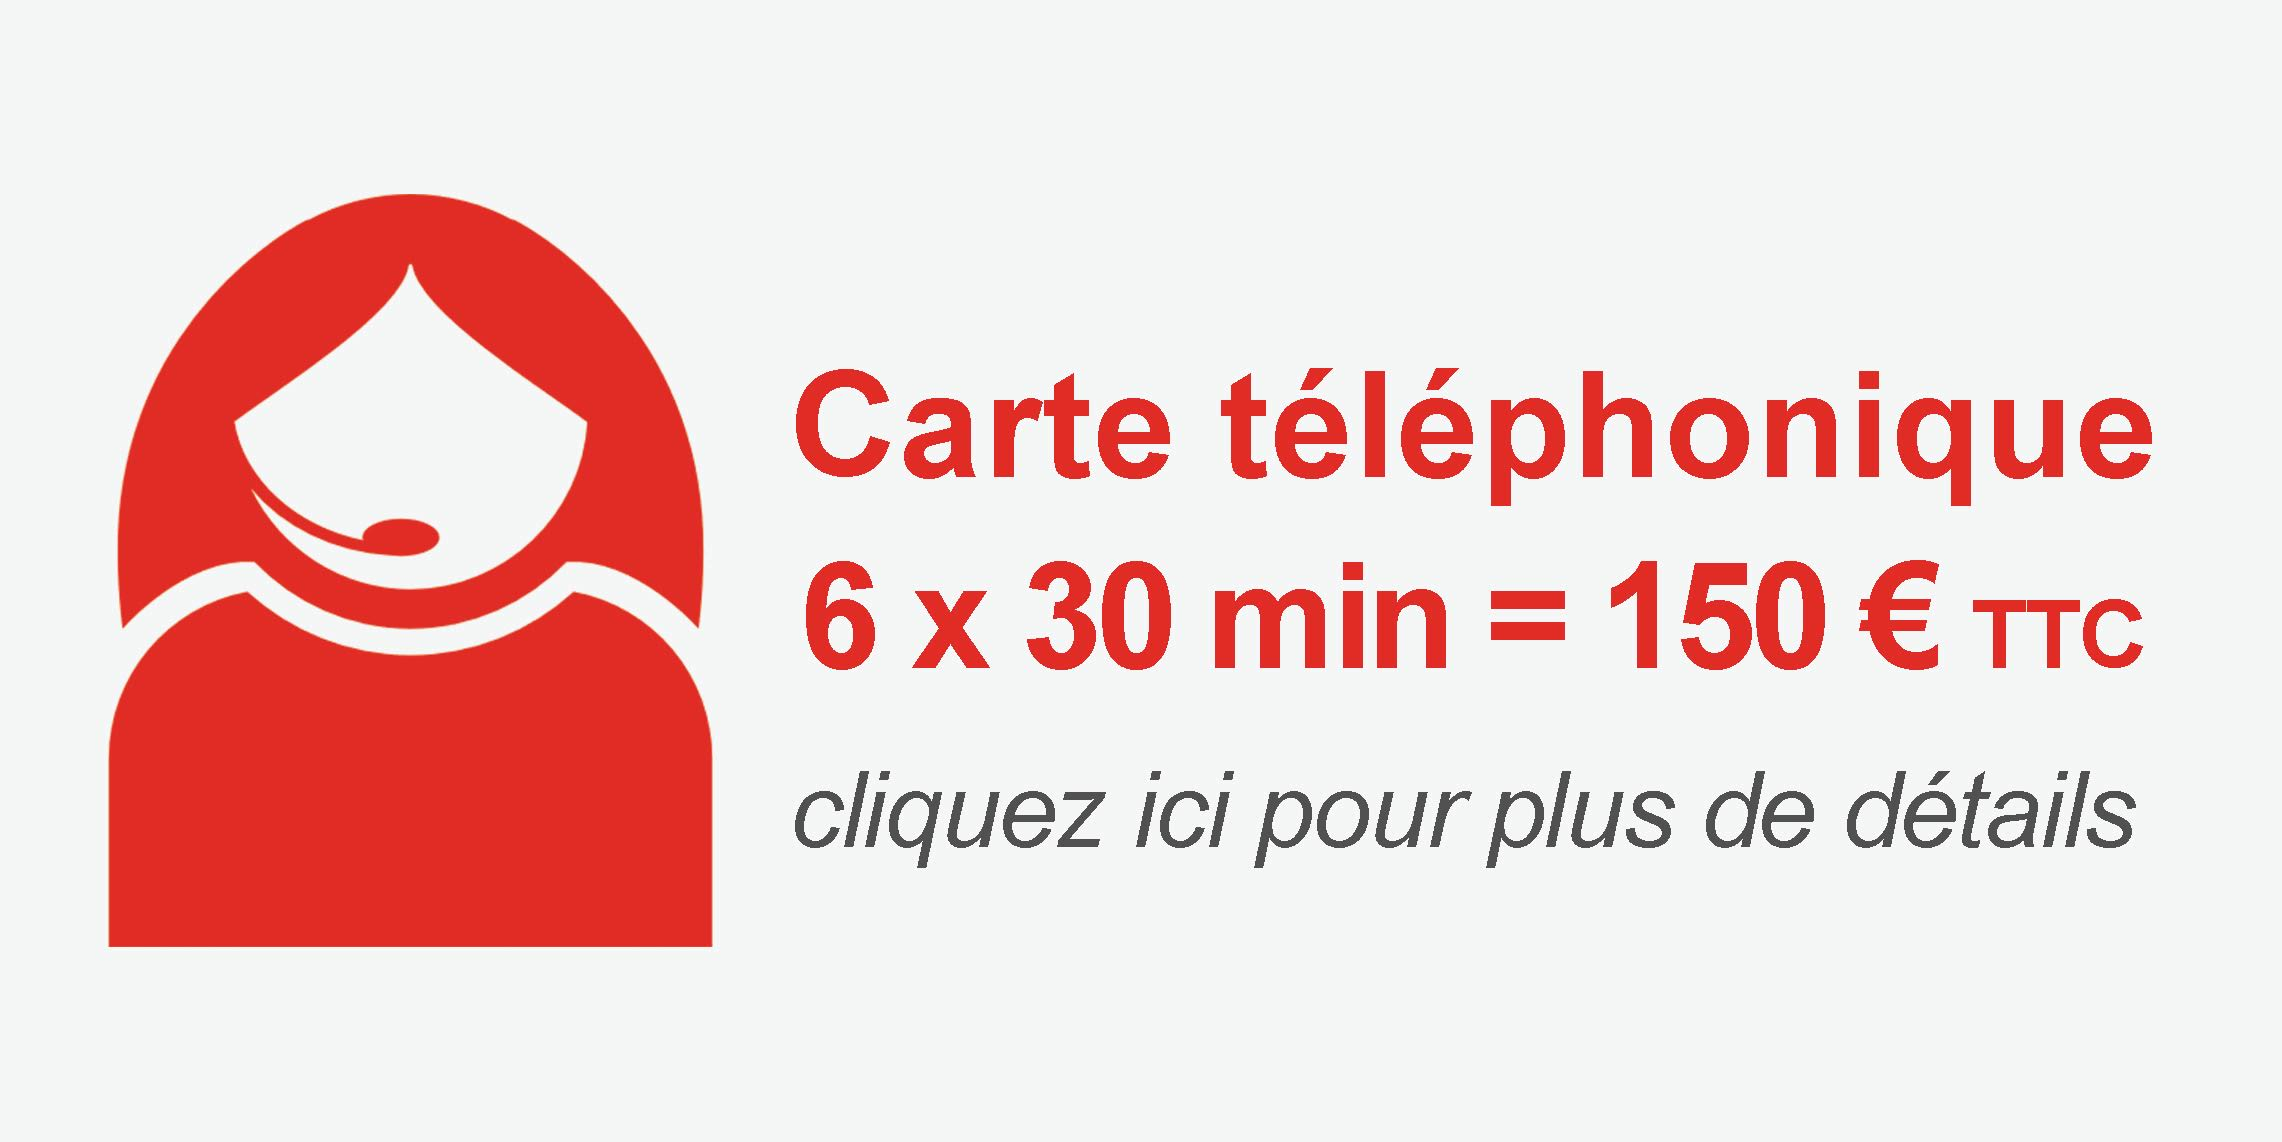 RIM Interprete telephonique